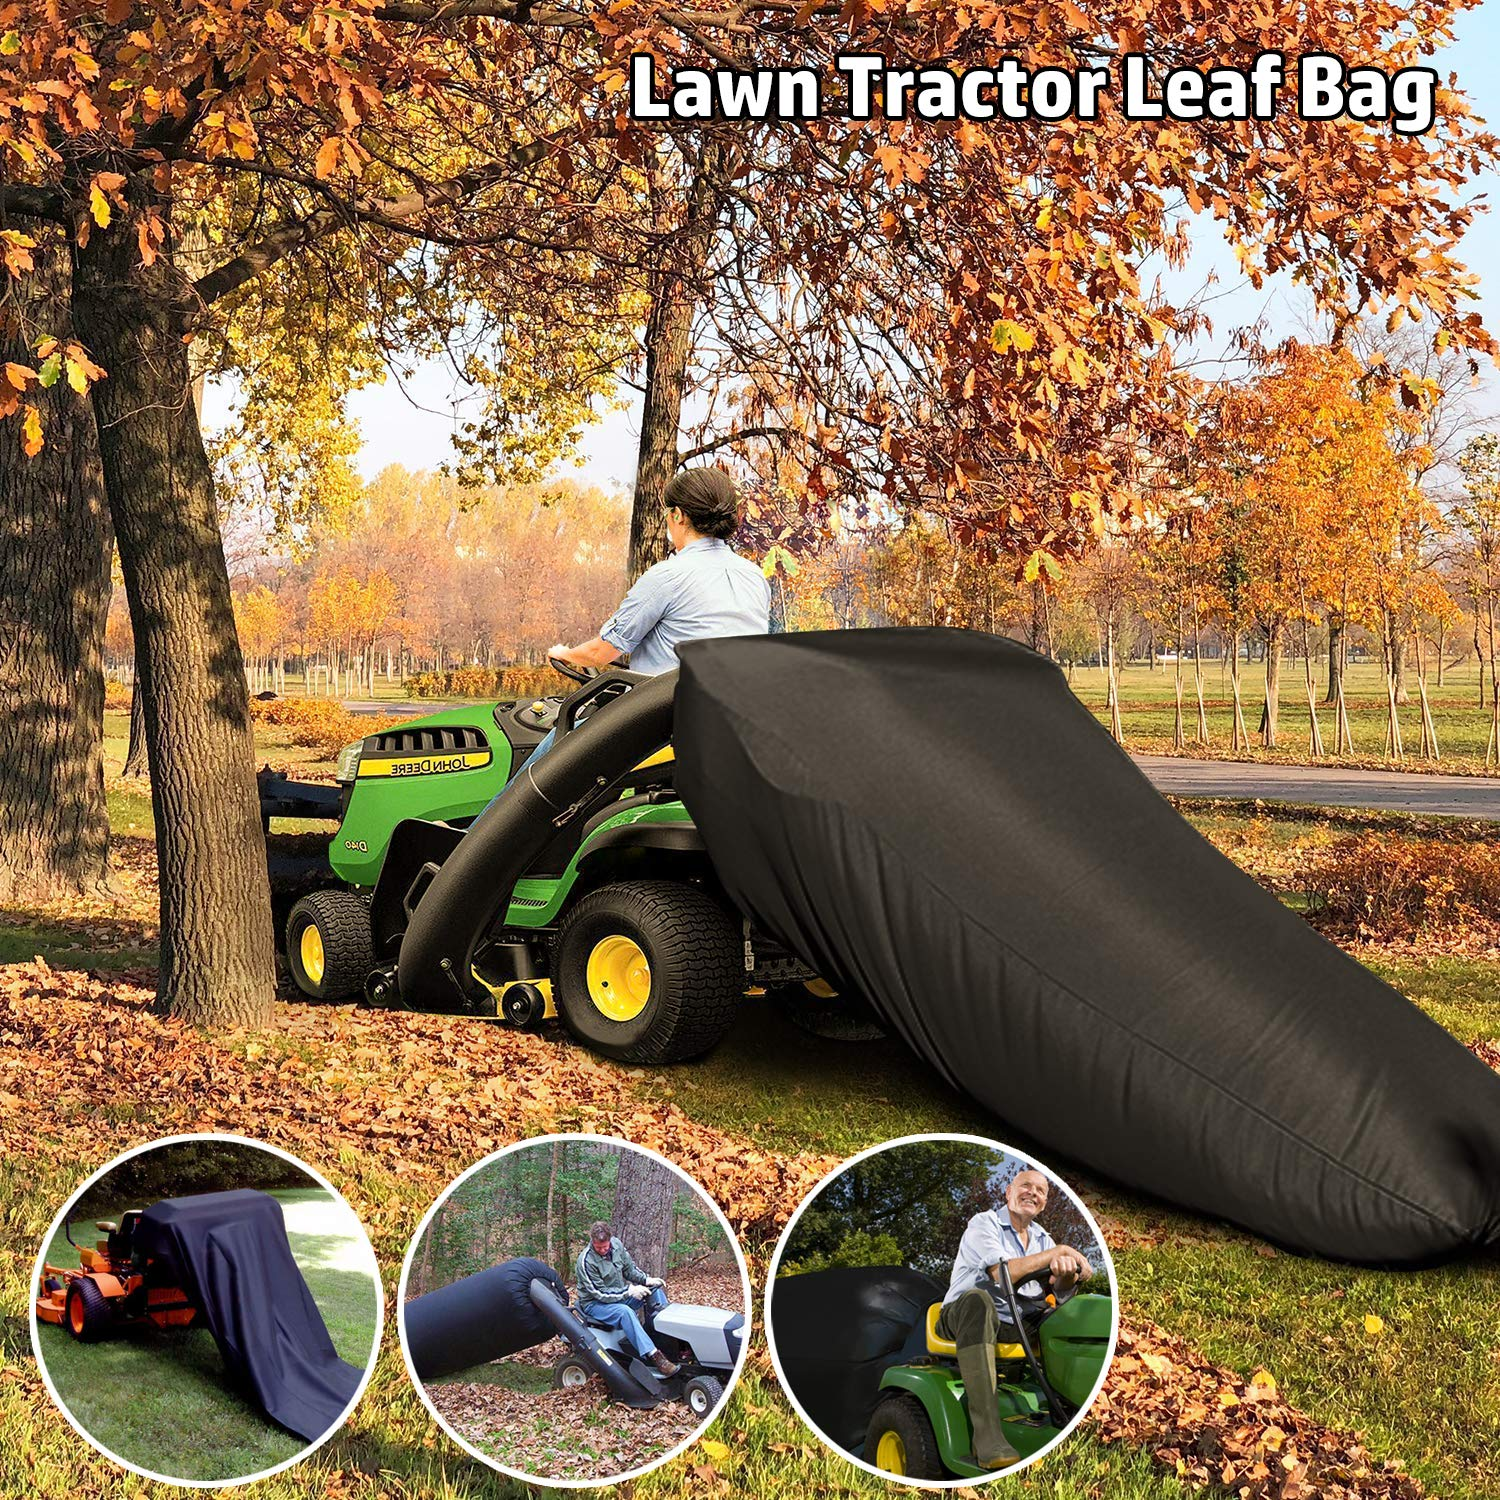 ORTIGIA Lawn Tractor Leaf Bag,Lawn Sweeper Tow Behind,Reusable Collecting Leaves Waste Bag,Mower Leaf Bag,Bag with Chute Kit for Cub Cadet XT1 LT42, XT1 LT46, XT2 LX42, XT2 LX46 Lawn Tractors.